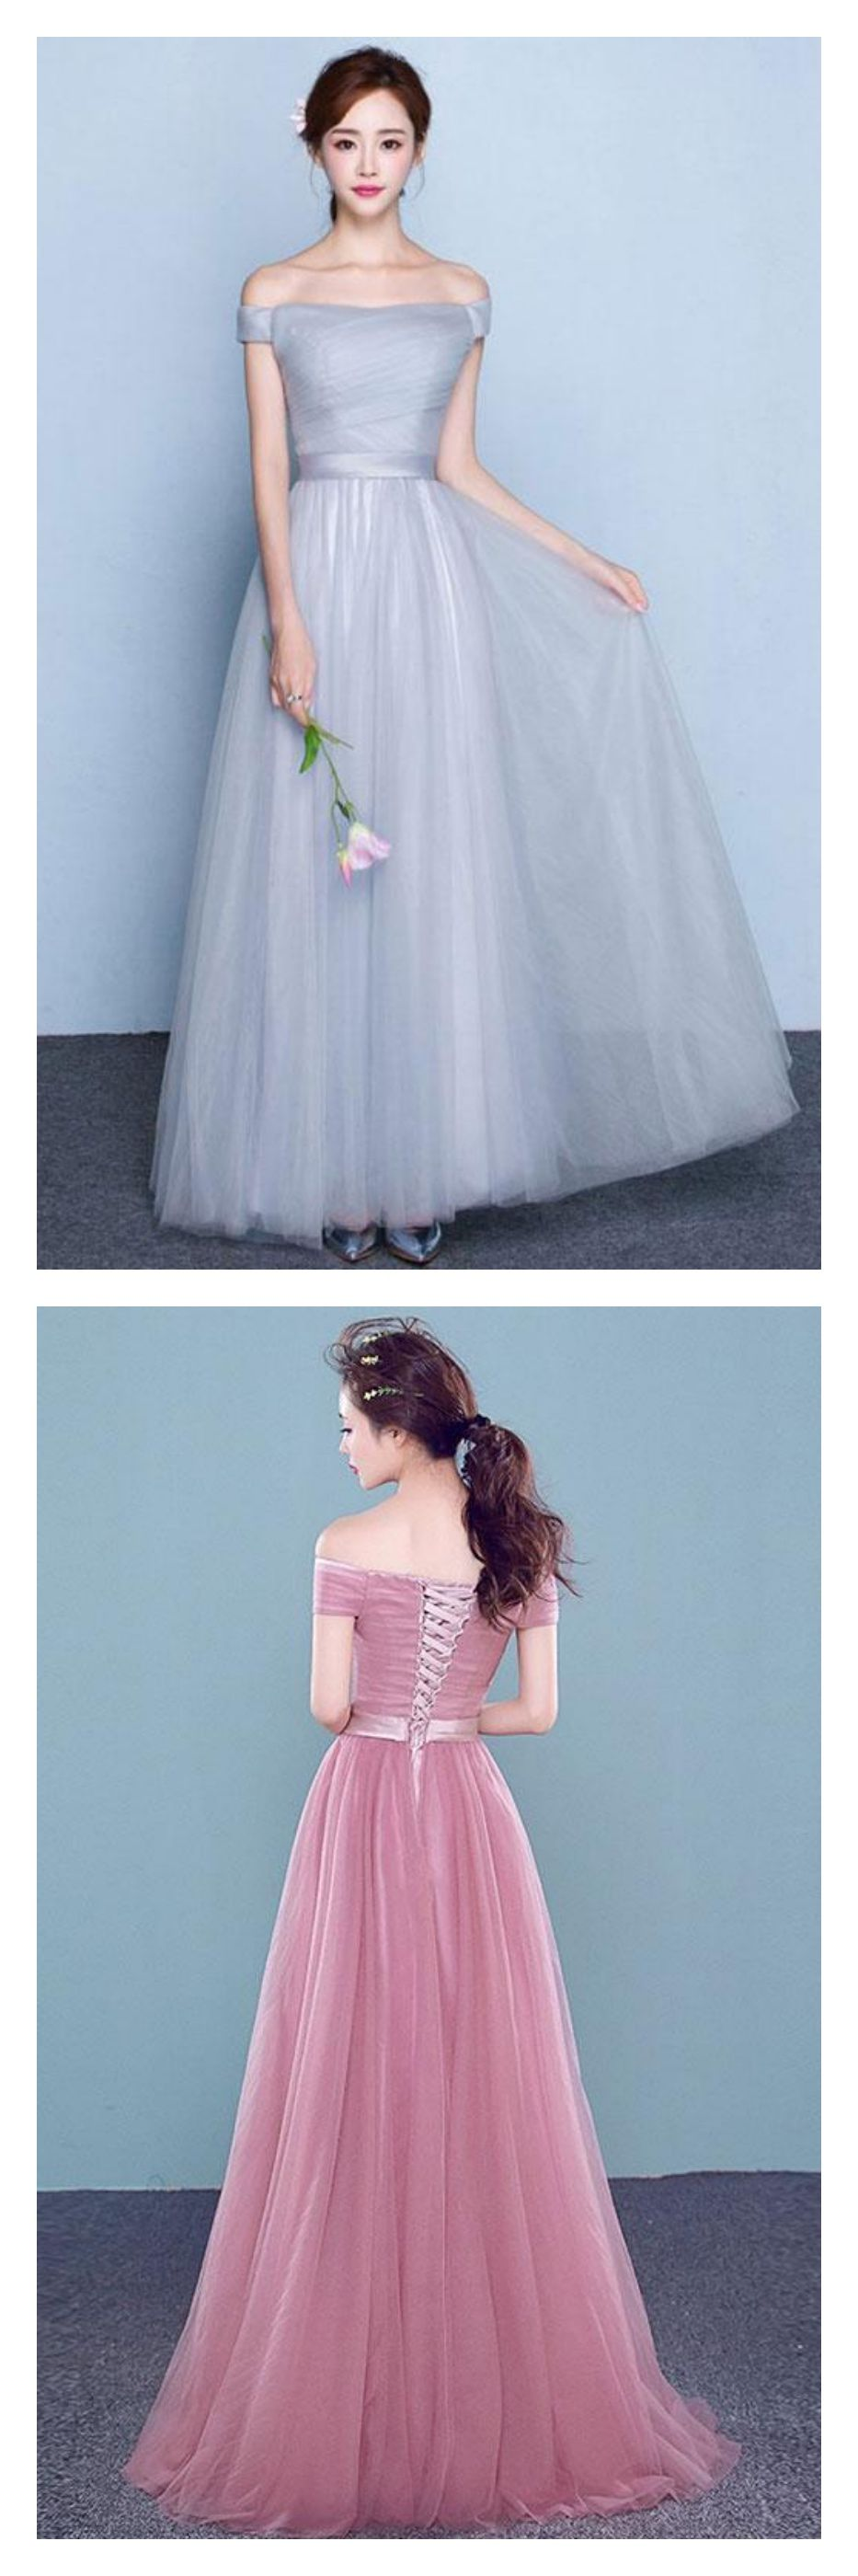 Simple Off Shoulder Long Tulle Prom Dresses,HS245 from SIMI Bridal ...